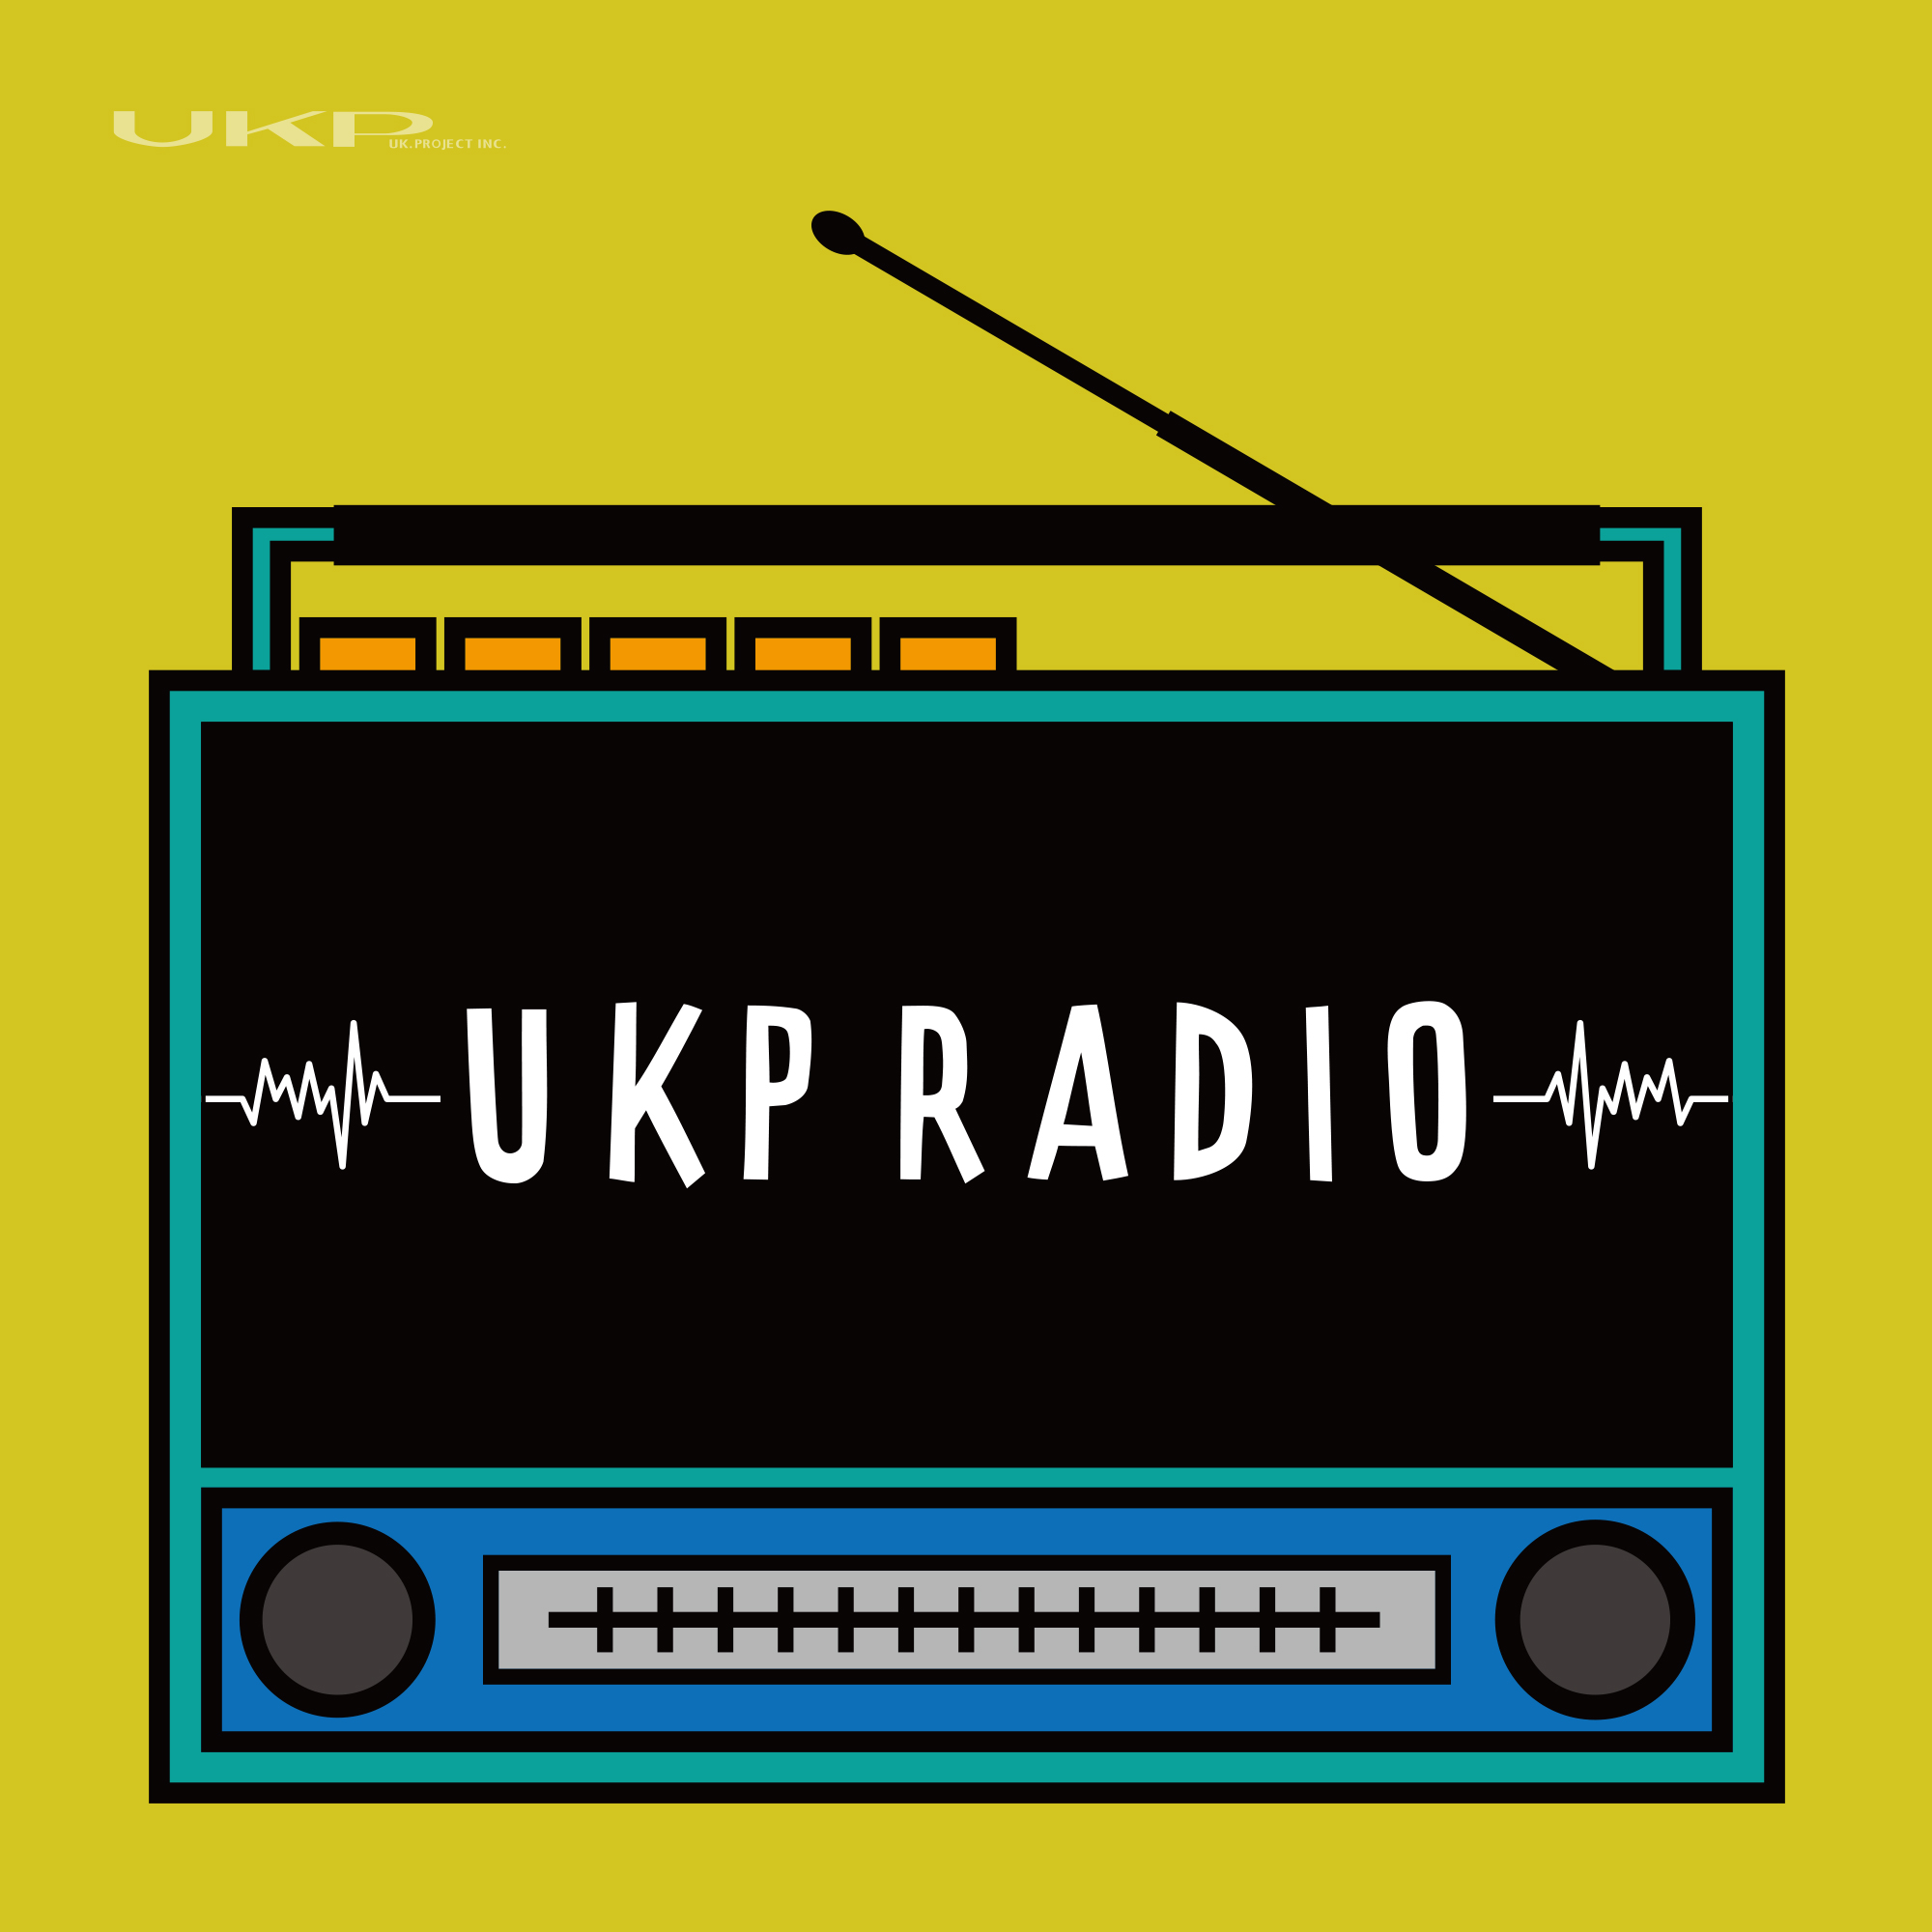 ukpradio_logo_fix